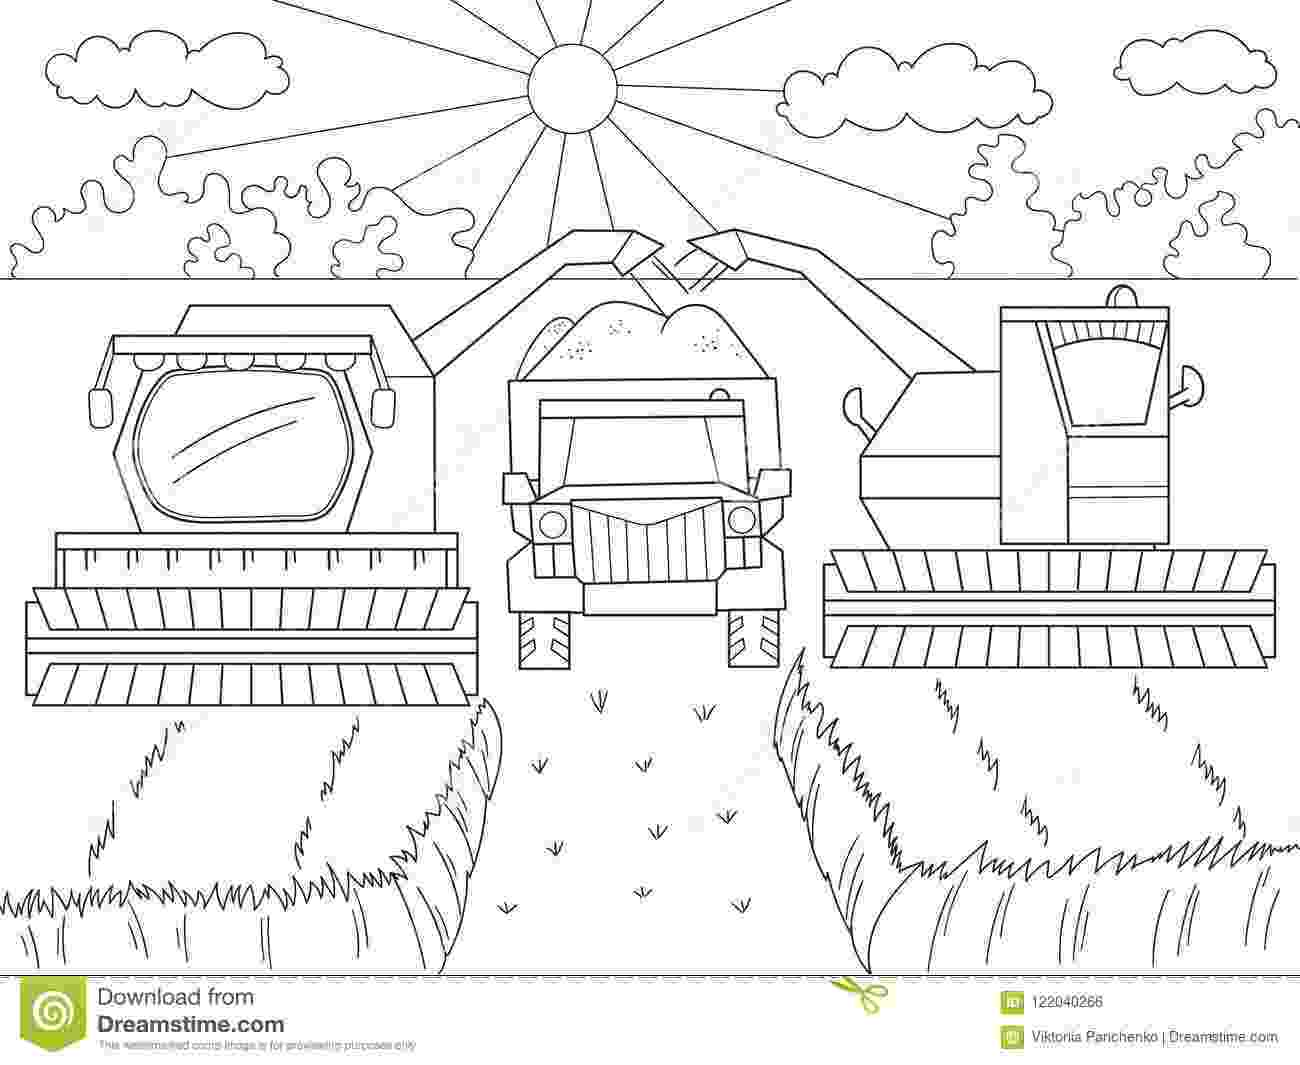 combine harvester colouring pages cartoon coloring book for children autumn harvesting of pages colouring combine harvester